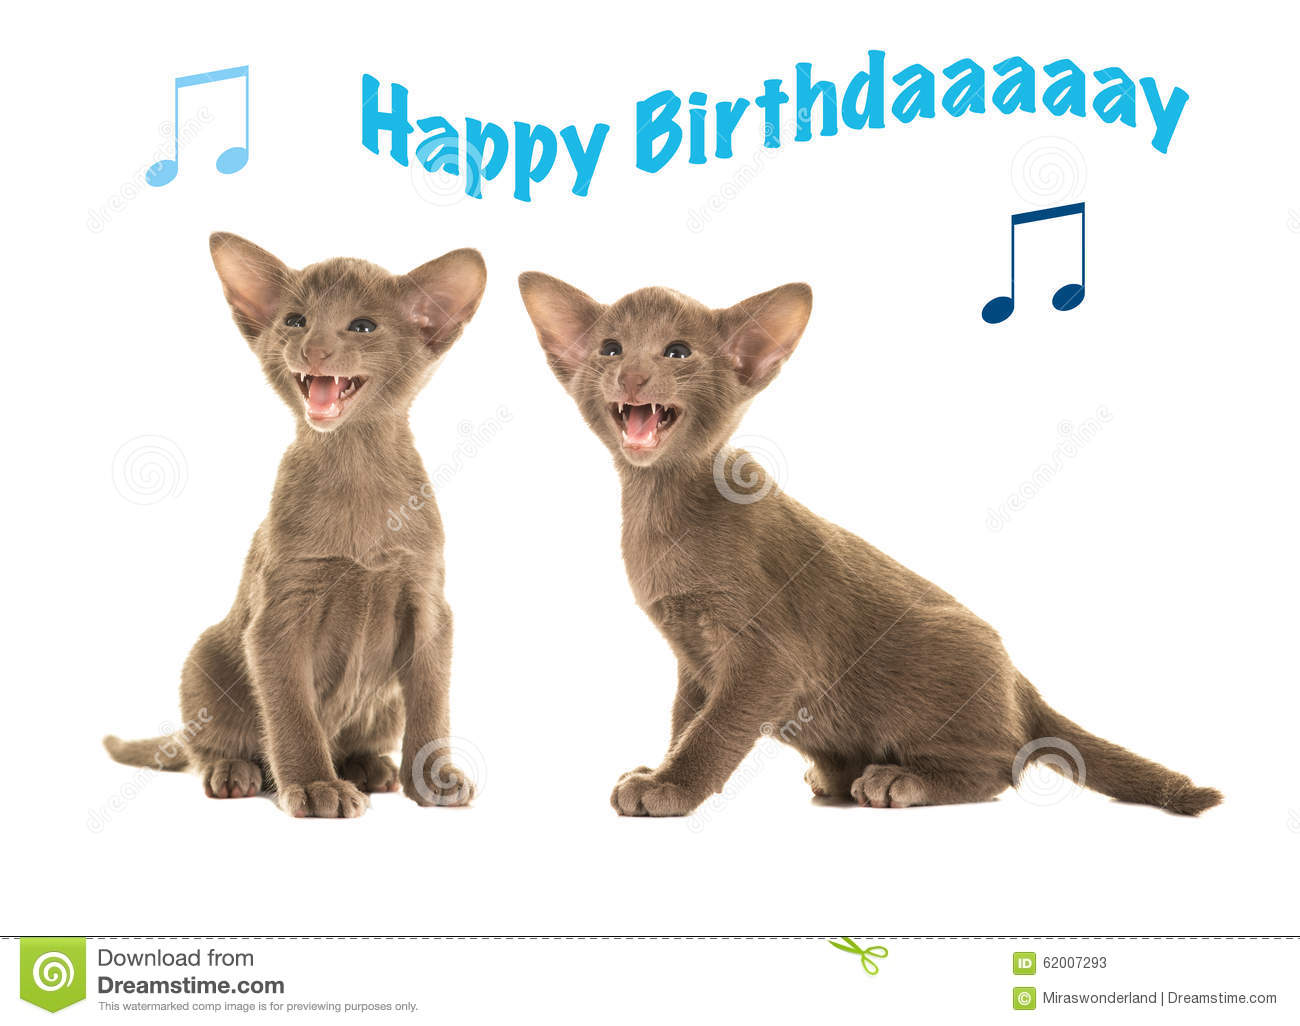 birthday card with siamese baby cats singing happy birthday stock, Birthday card